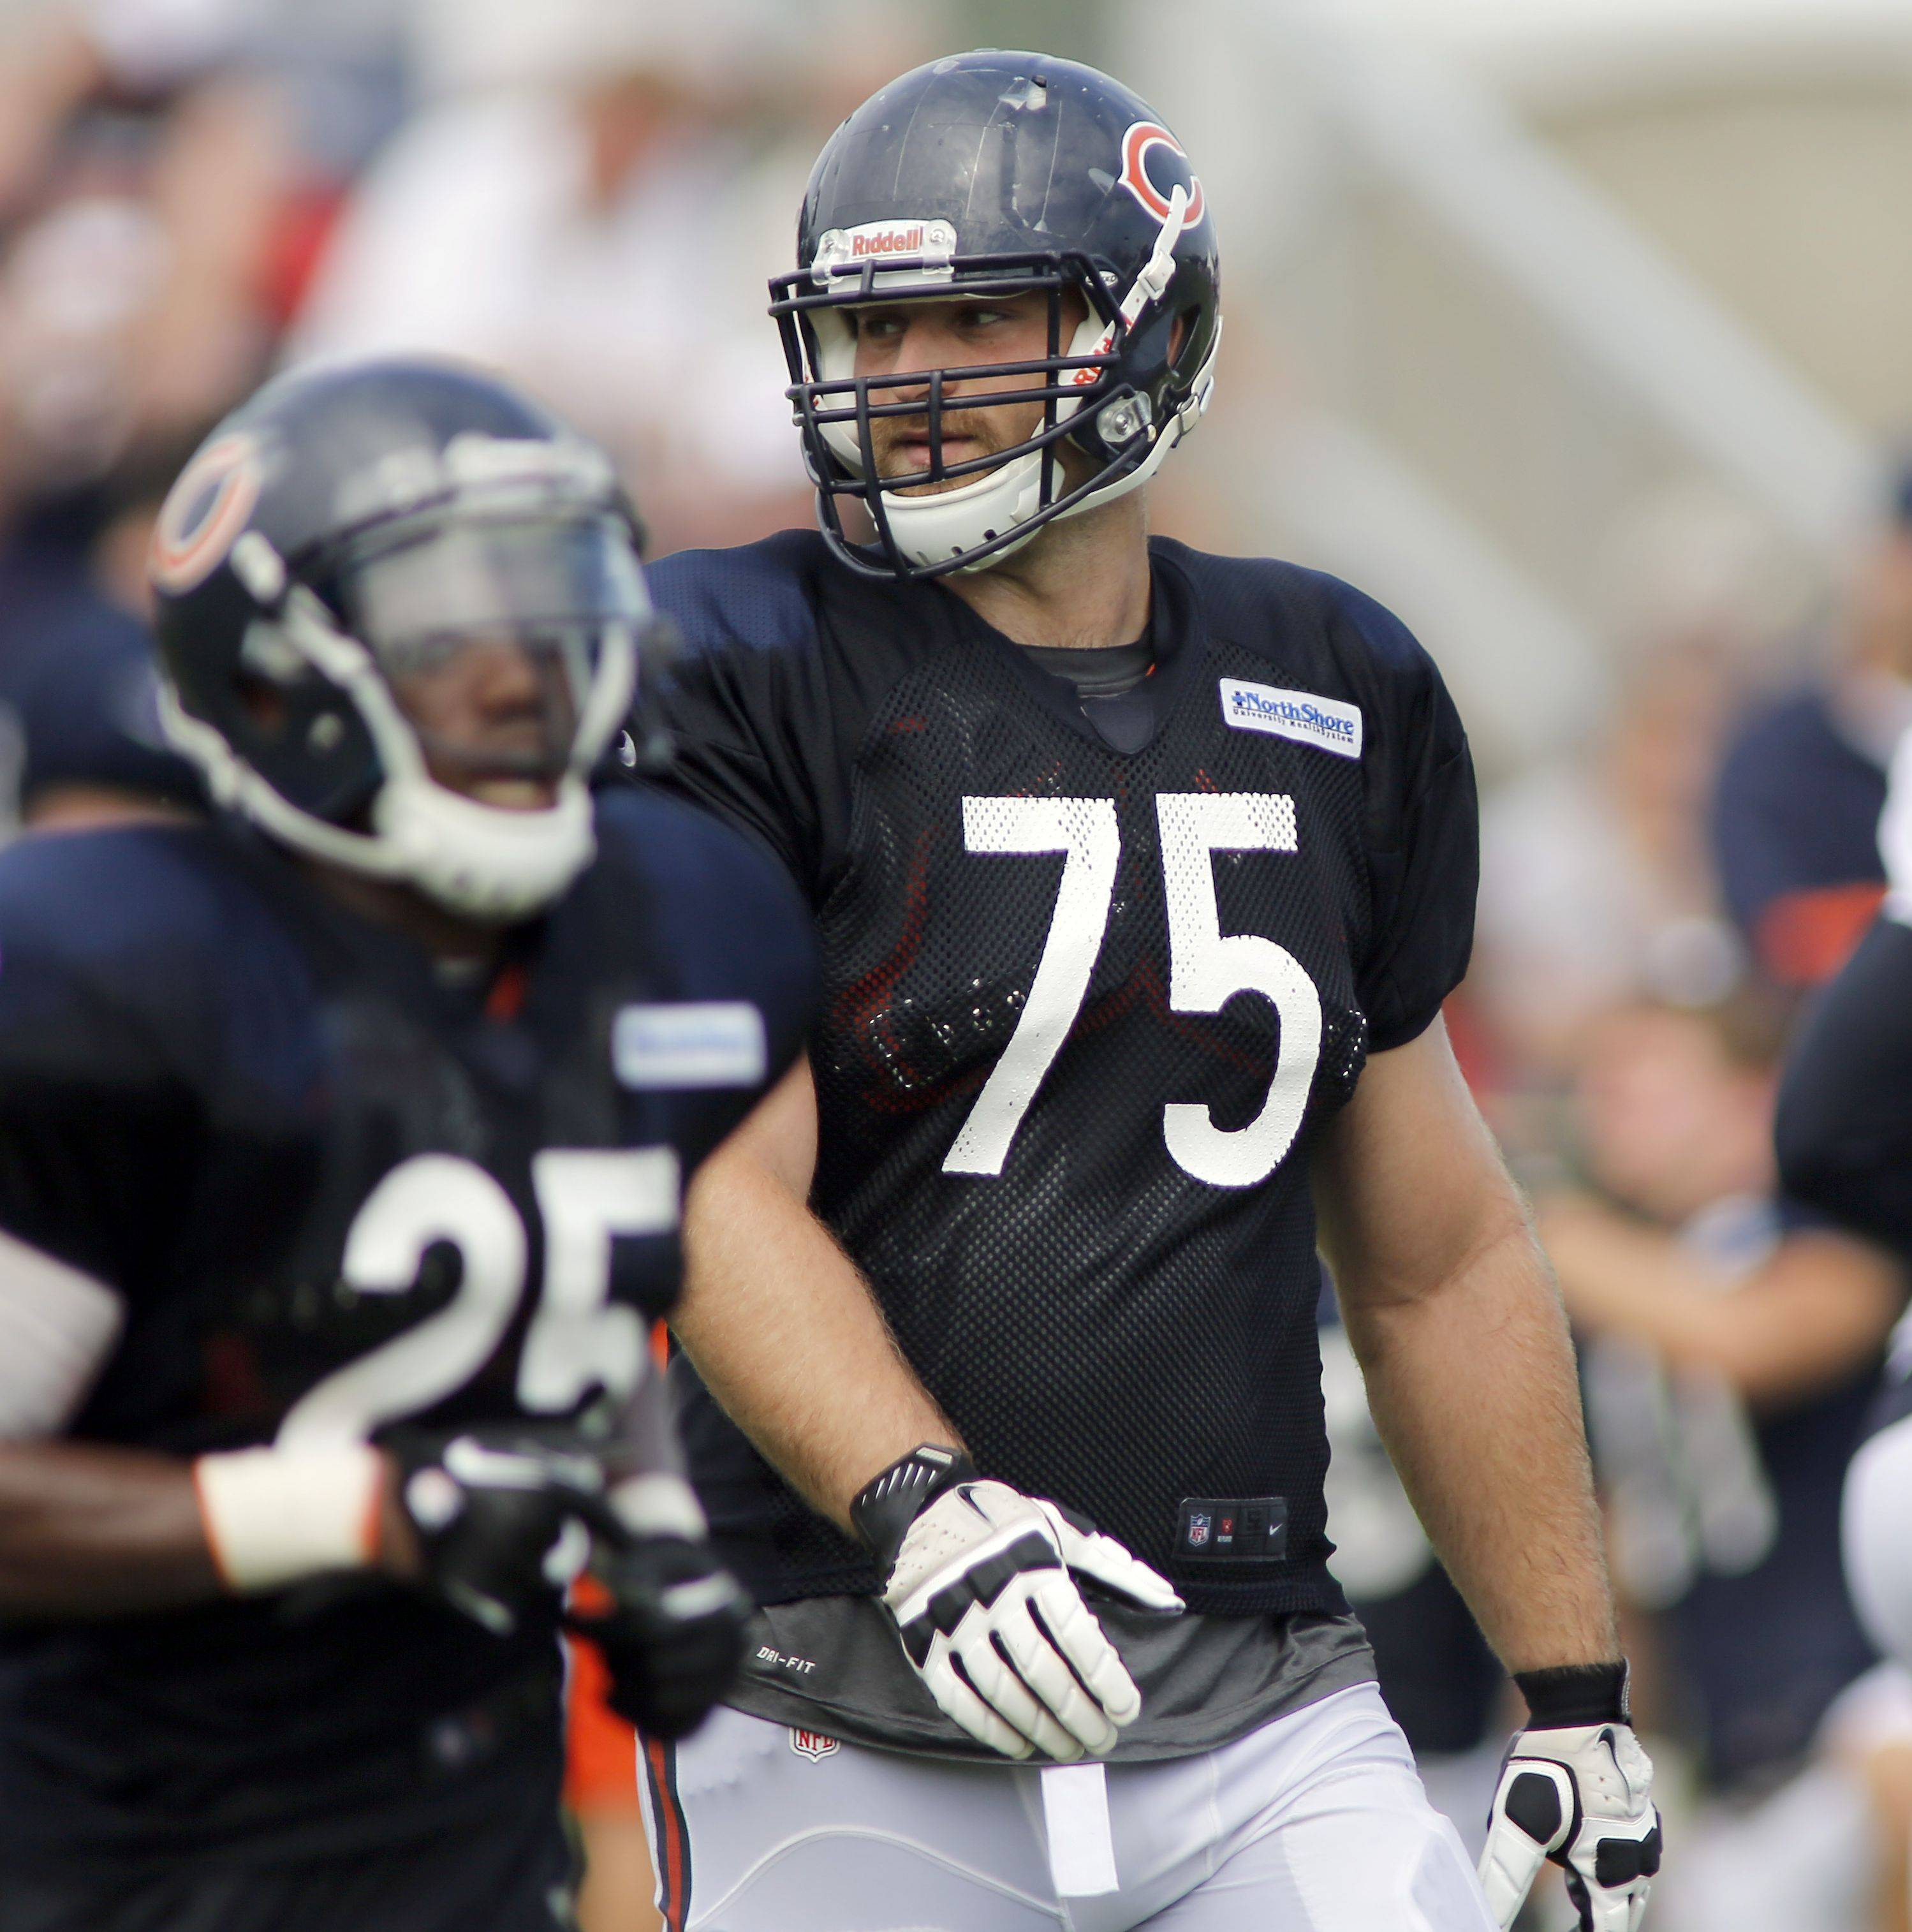 The veteran starters won't play against the Browns on Thursday, but rookies like Kyle Long (above), Jordan Mills and Jon Bostic may see limited action.